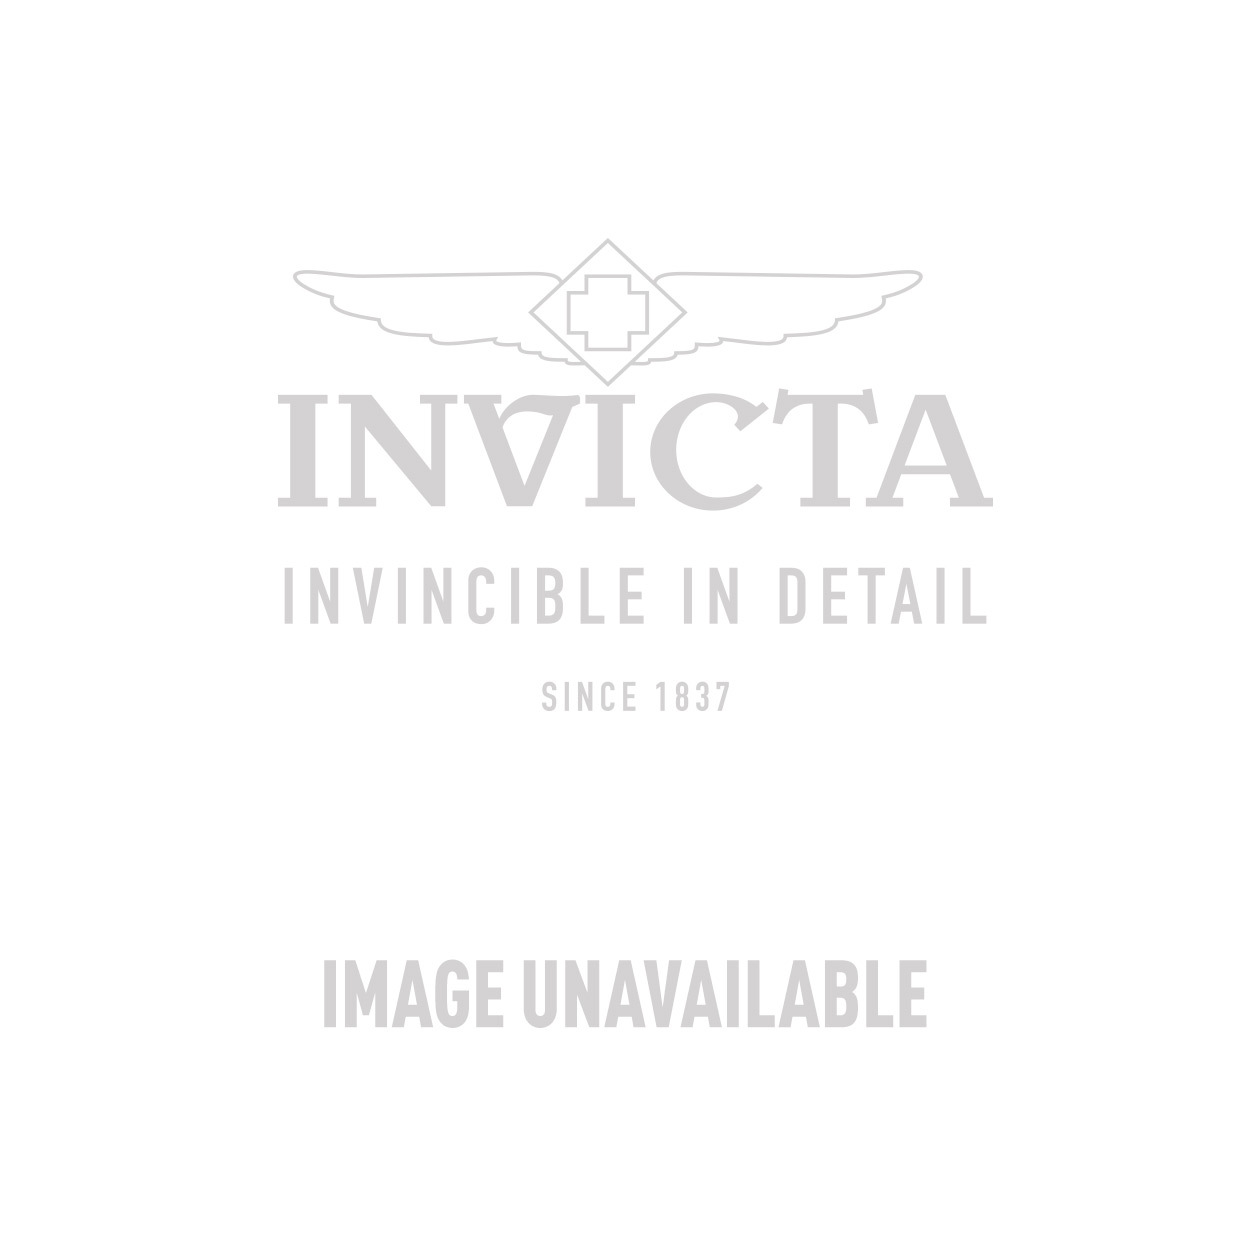 Invicta 1 Slot Impact Case - Model DC1BRN/BLK